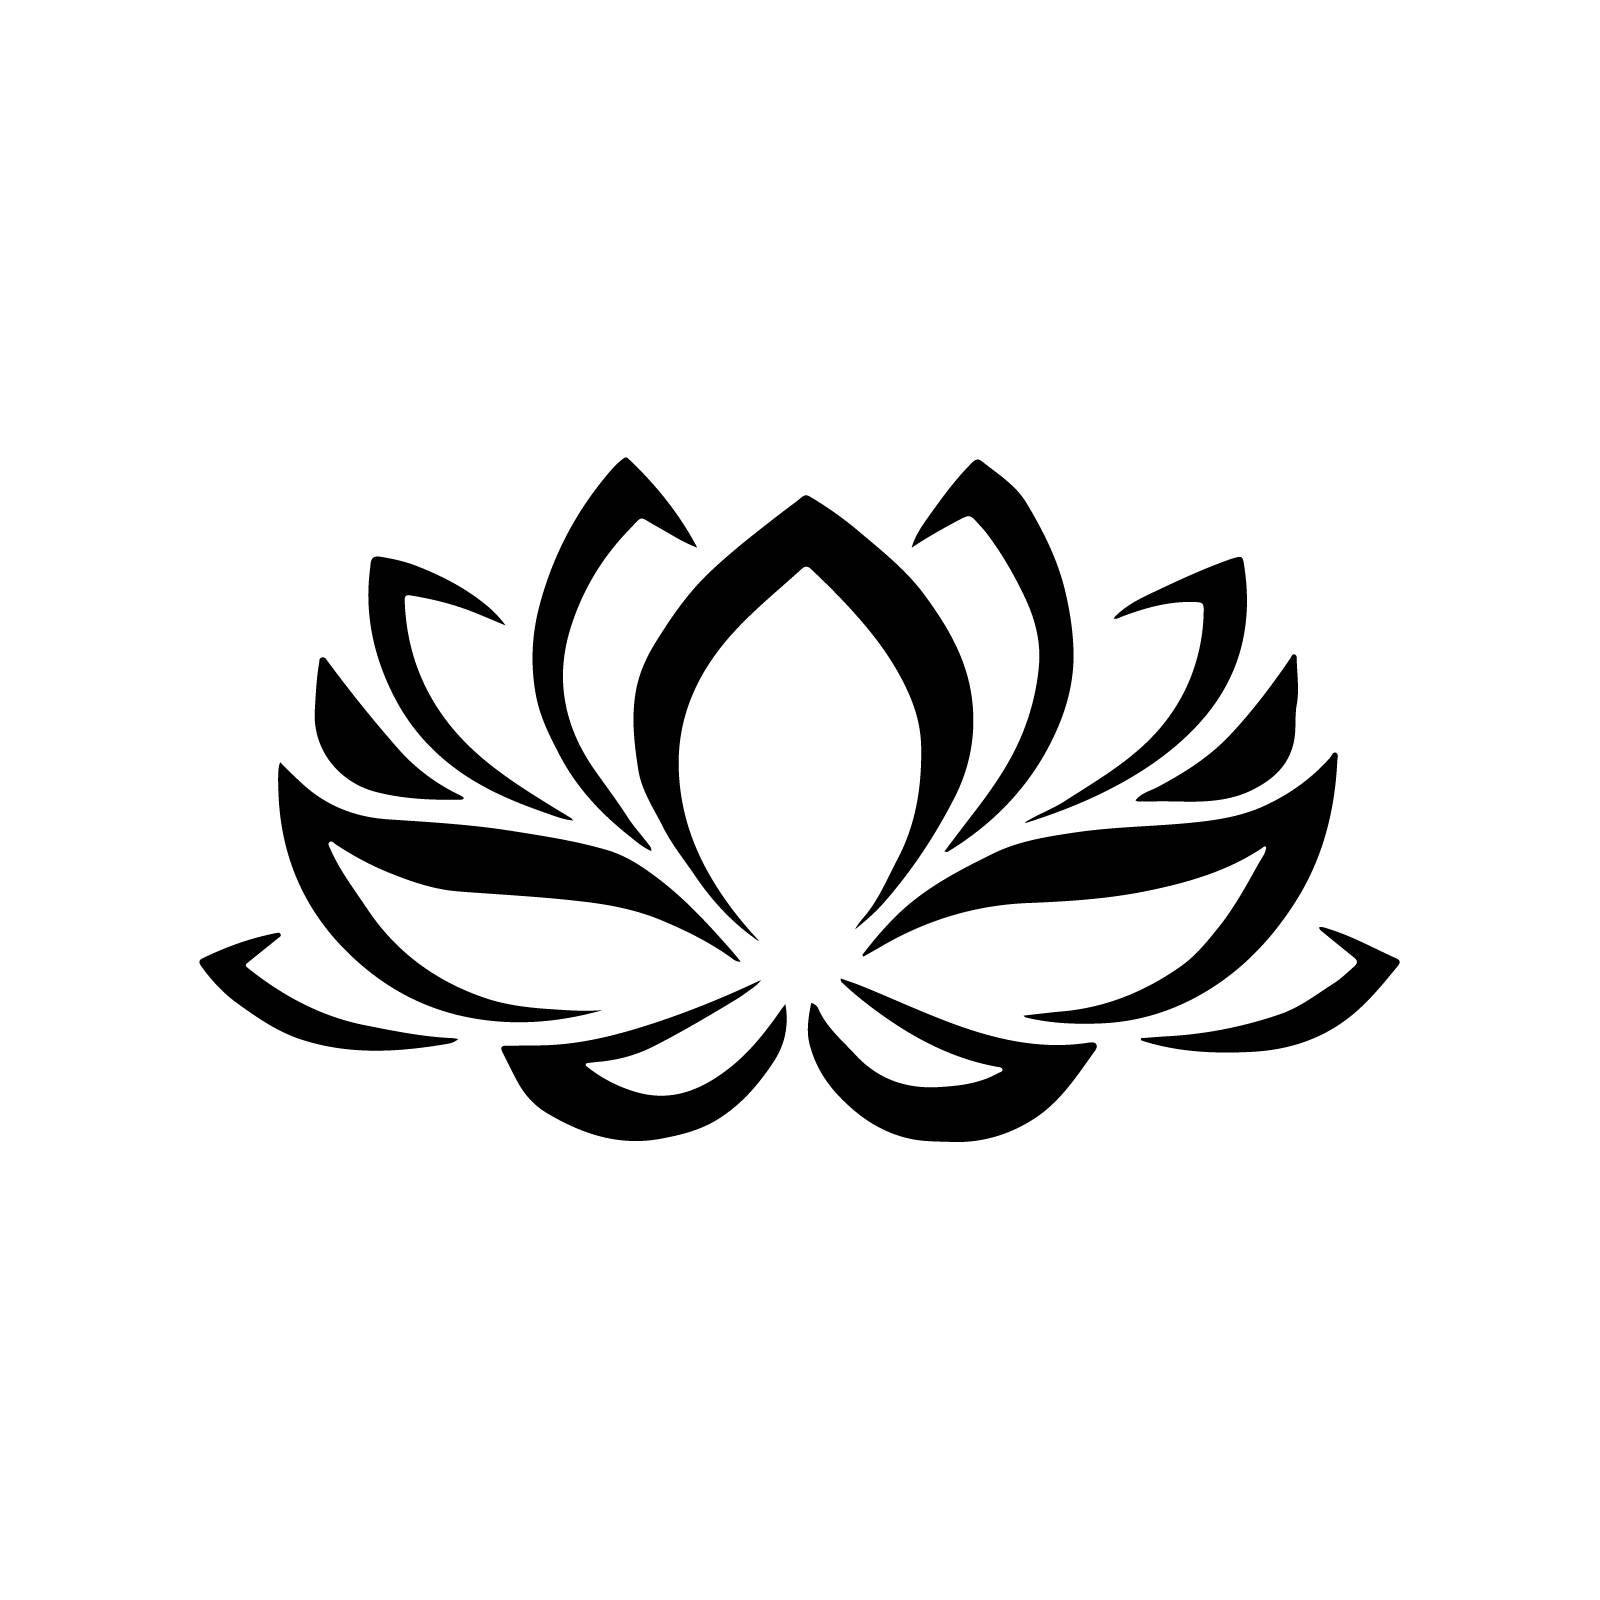 Stencil Floral Lotus Flower Stencil Decoration 5 Sizes Svg Pdf Png